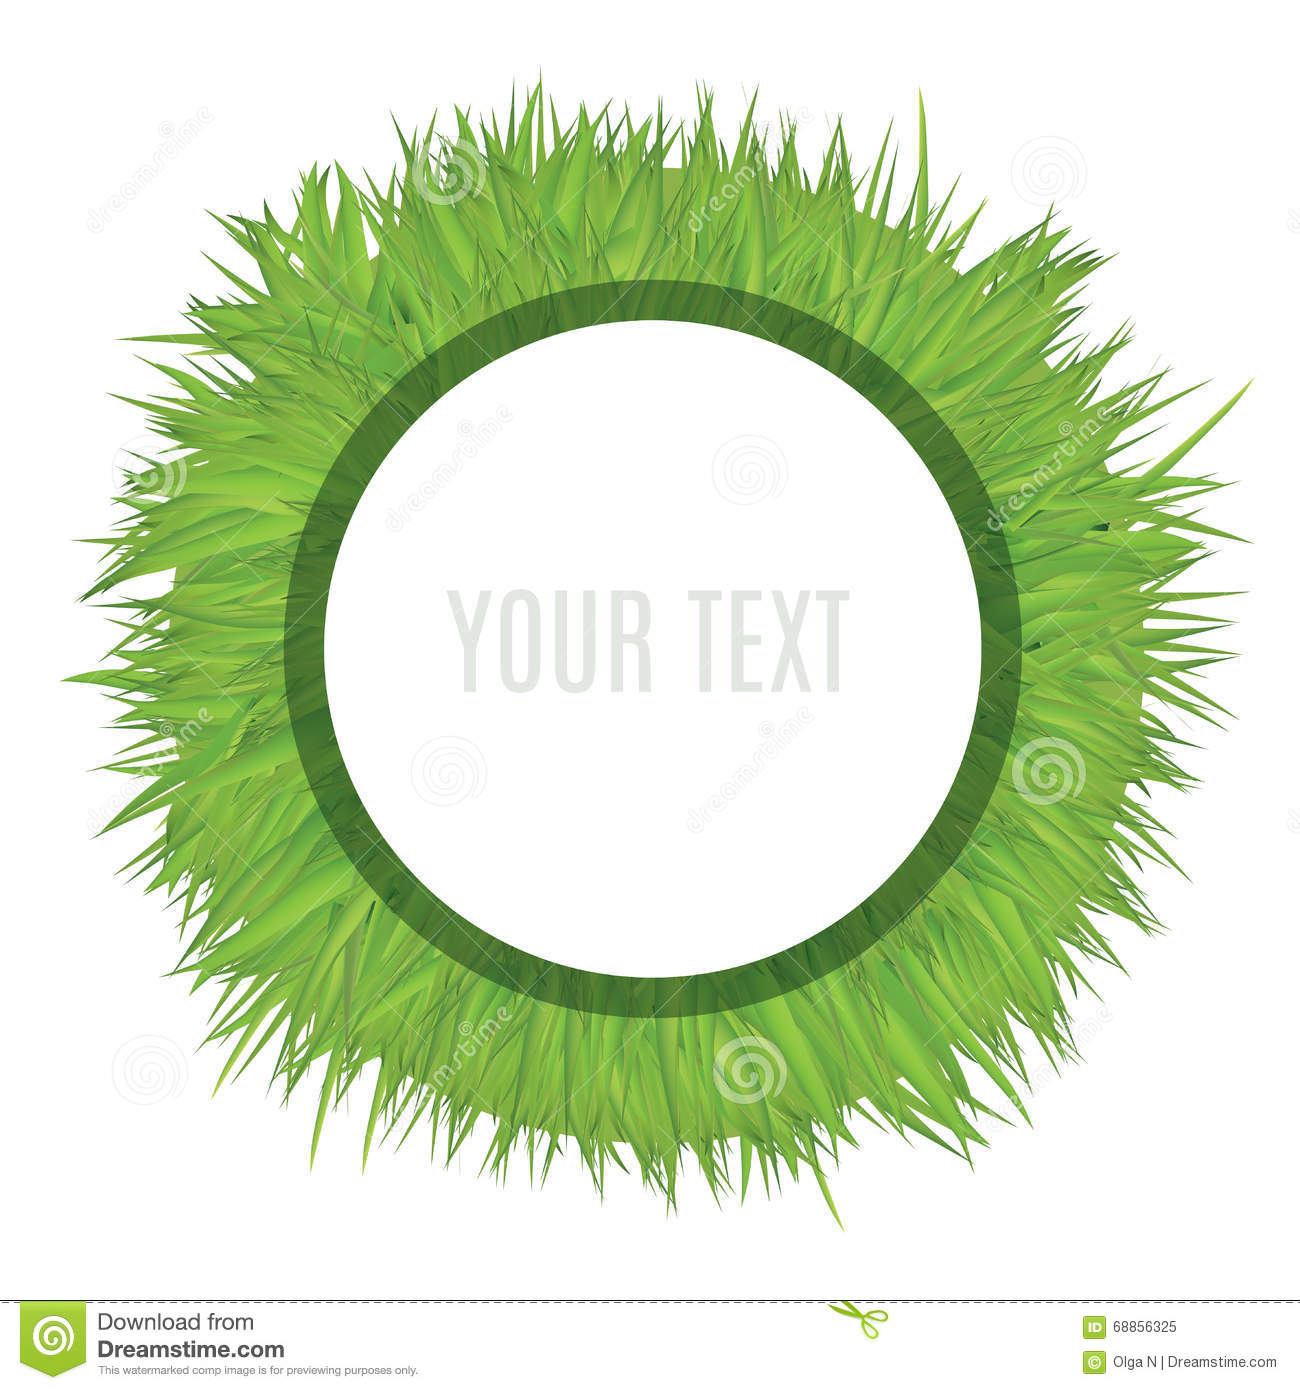 White Circle Frame Template On Grass Field. Decorative Vector.